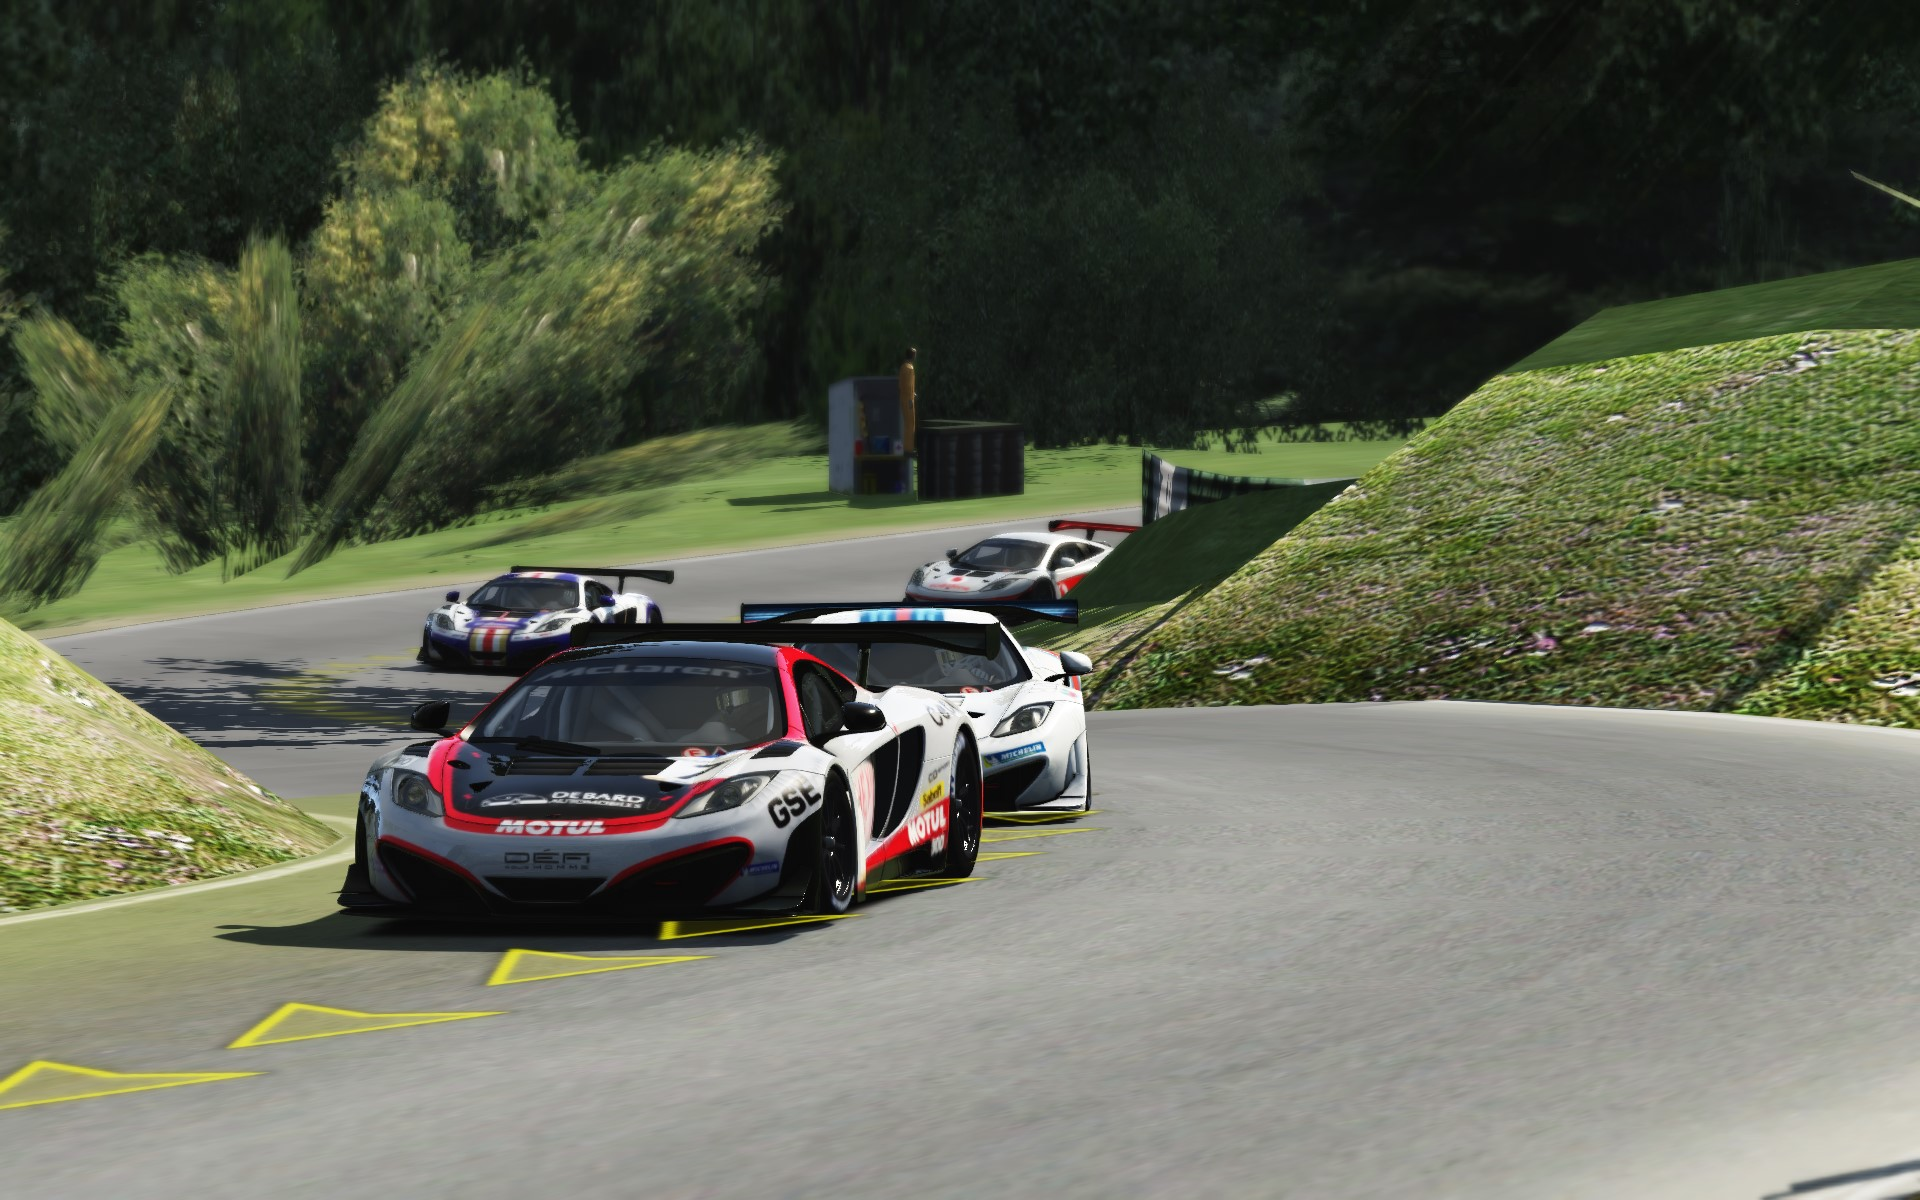 Screenshot_mclaren_mp412c_gt3_cadwell_21-6-115-15-26-41.jpg